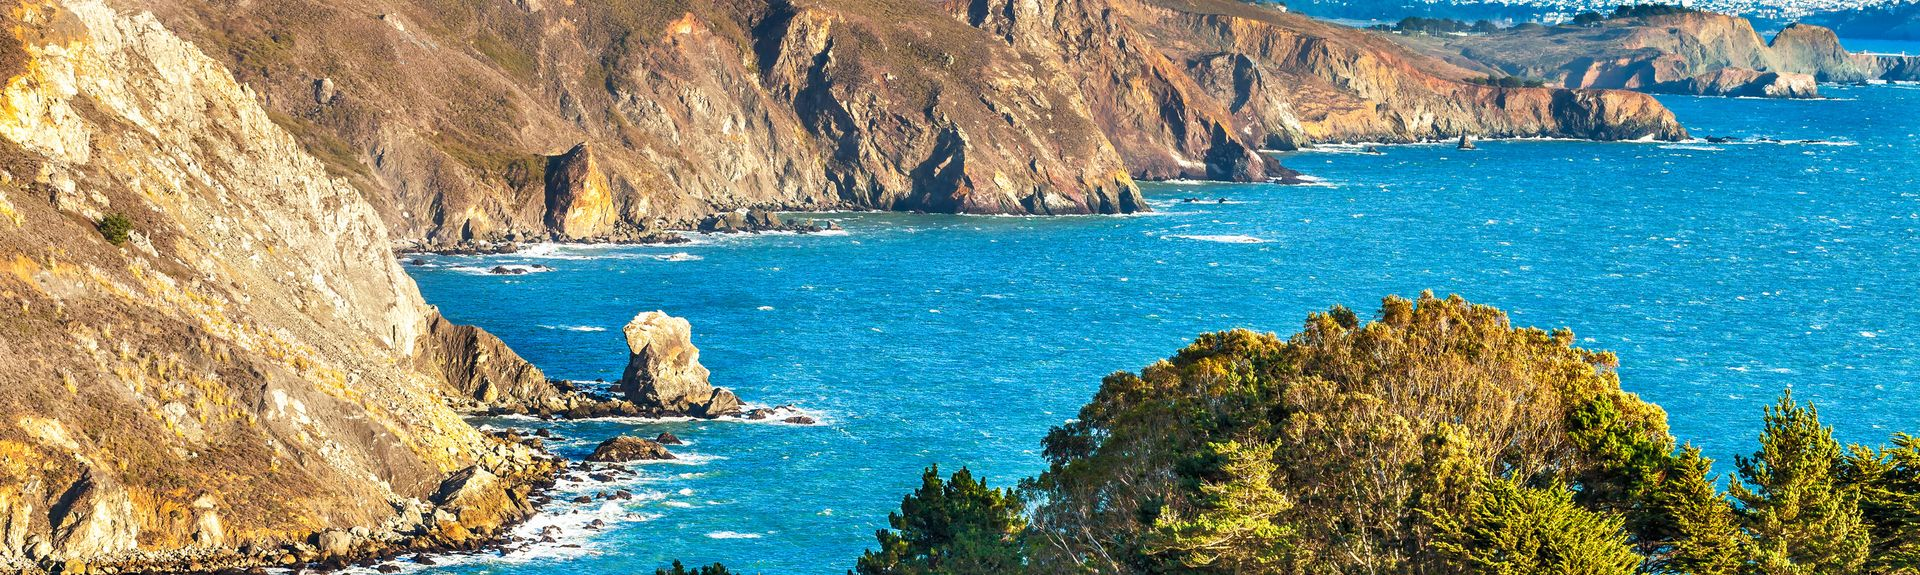 Marin County, California, Forente Stater